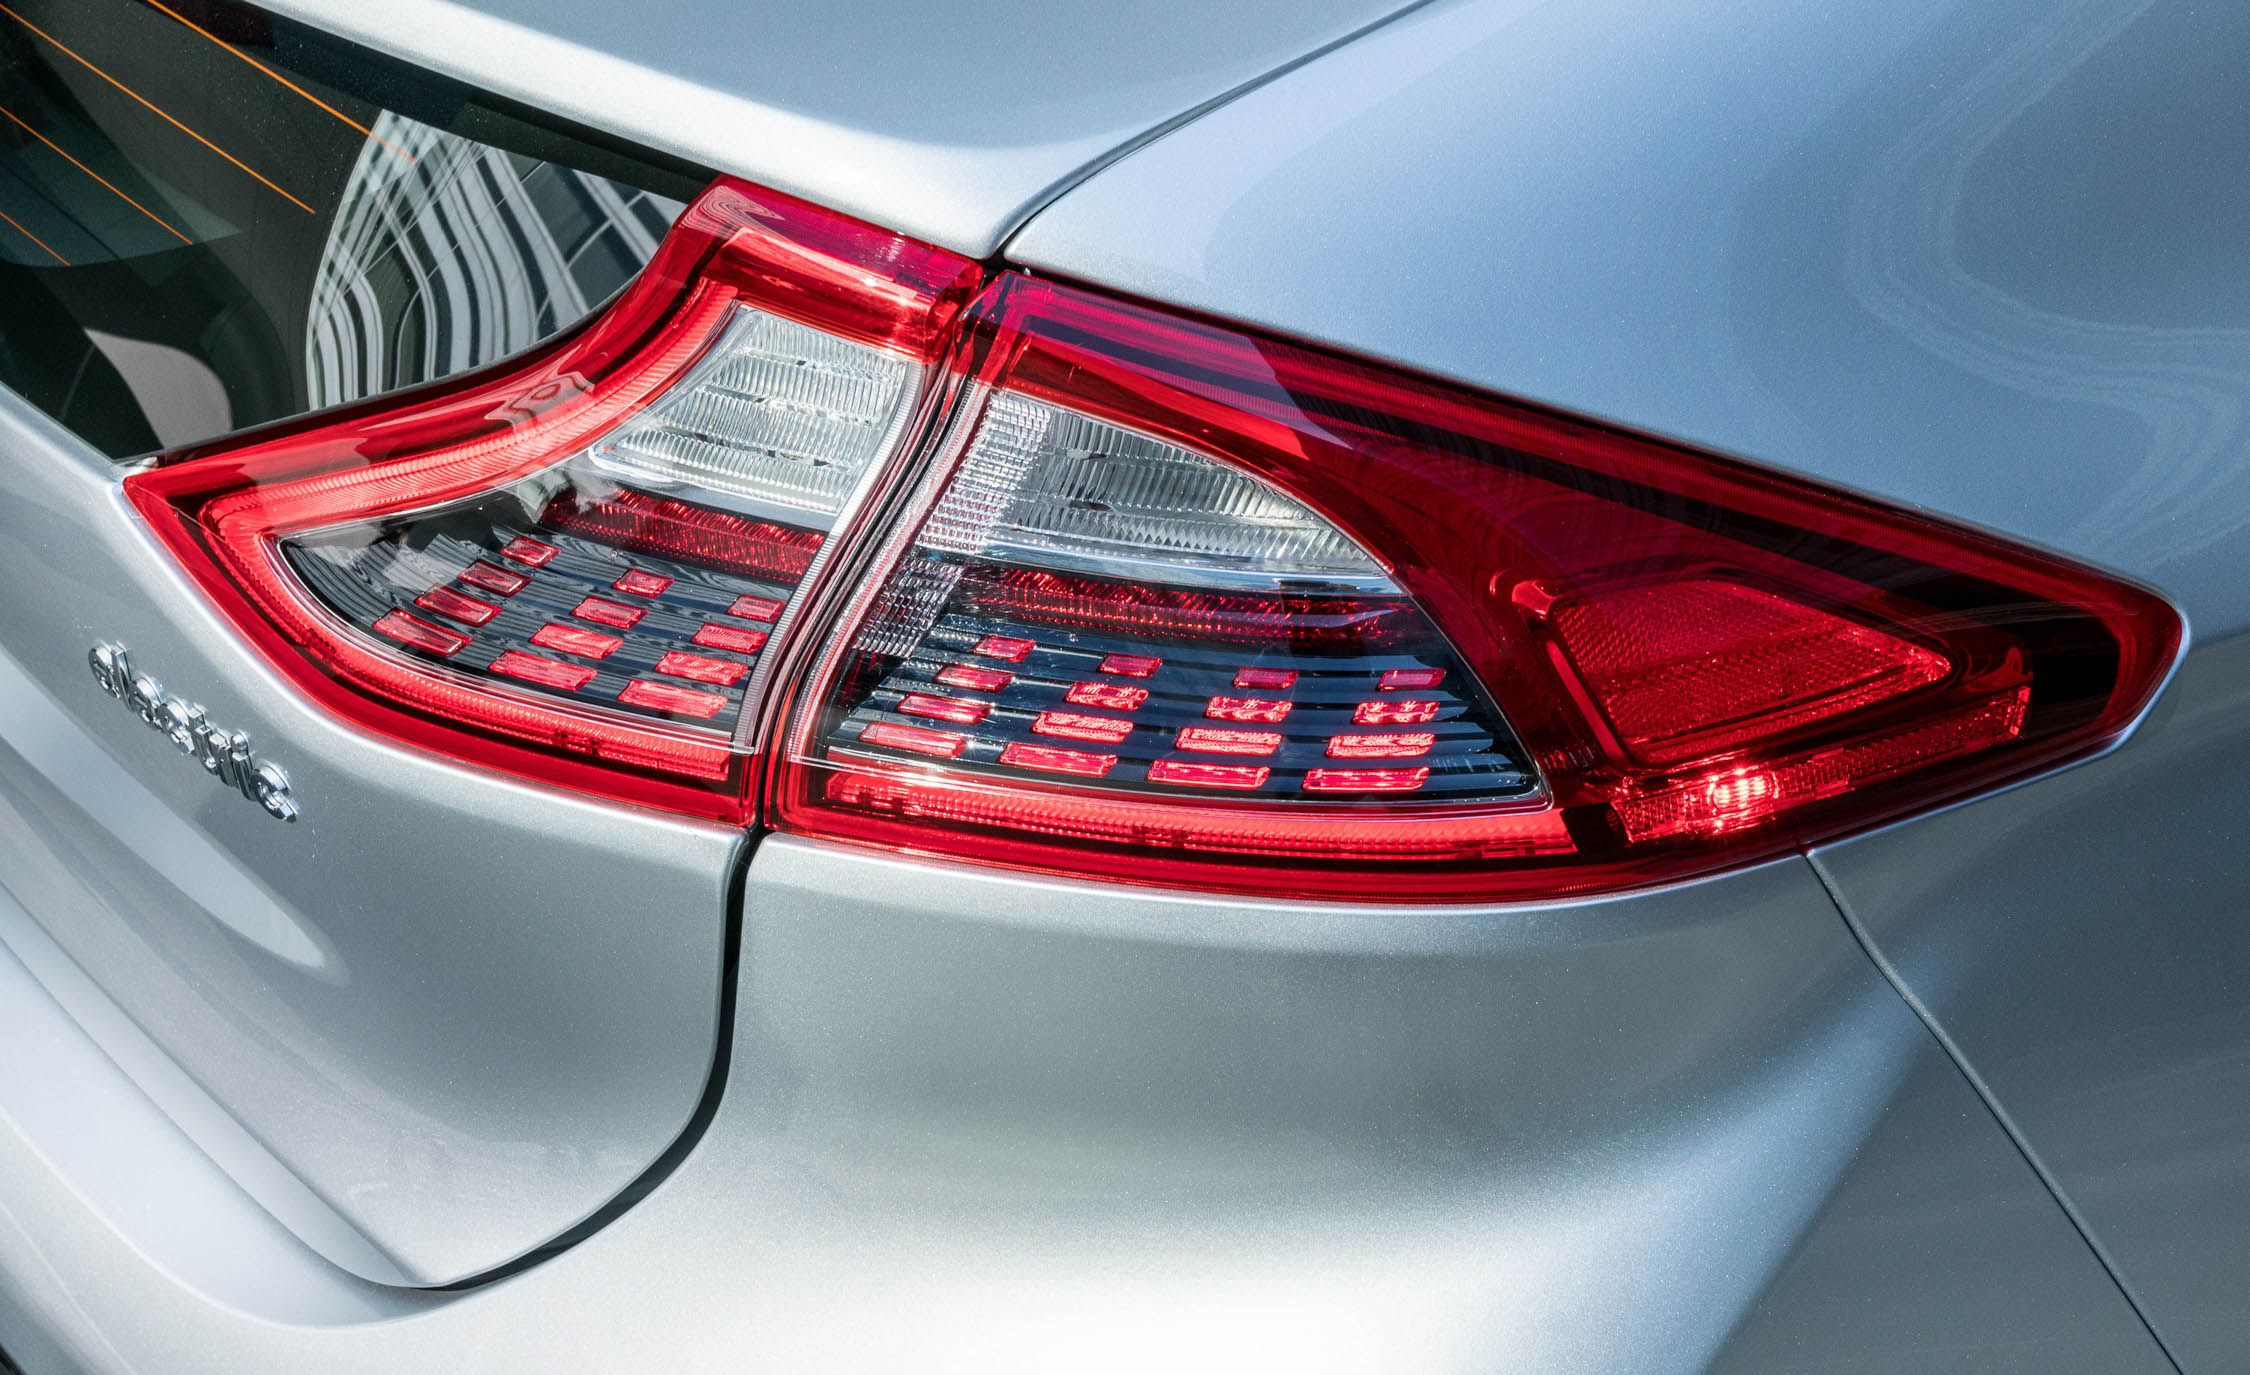 2017 Hyundai Ioniq Electric Exterior View Taillight (Photo 16 of 67)